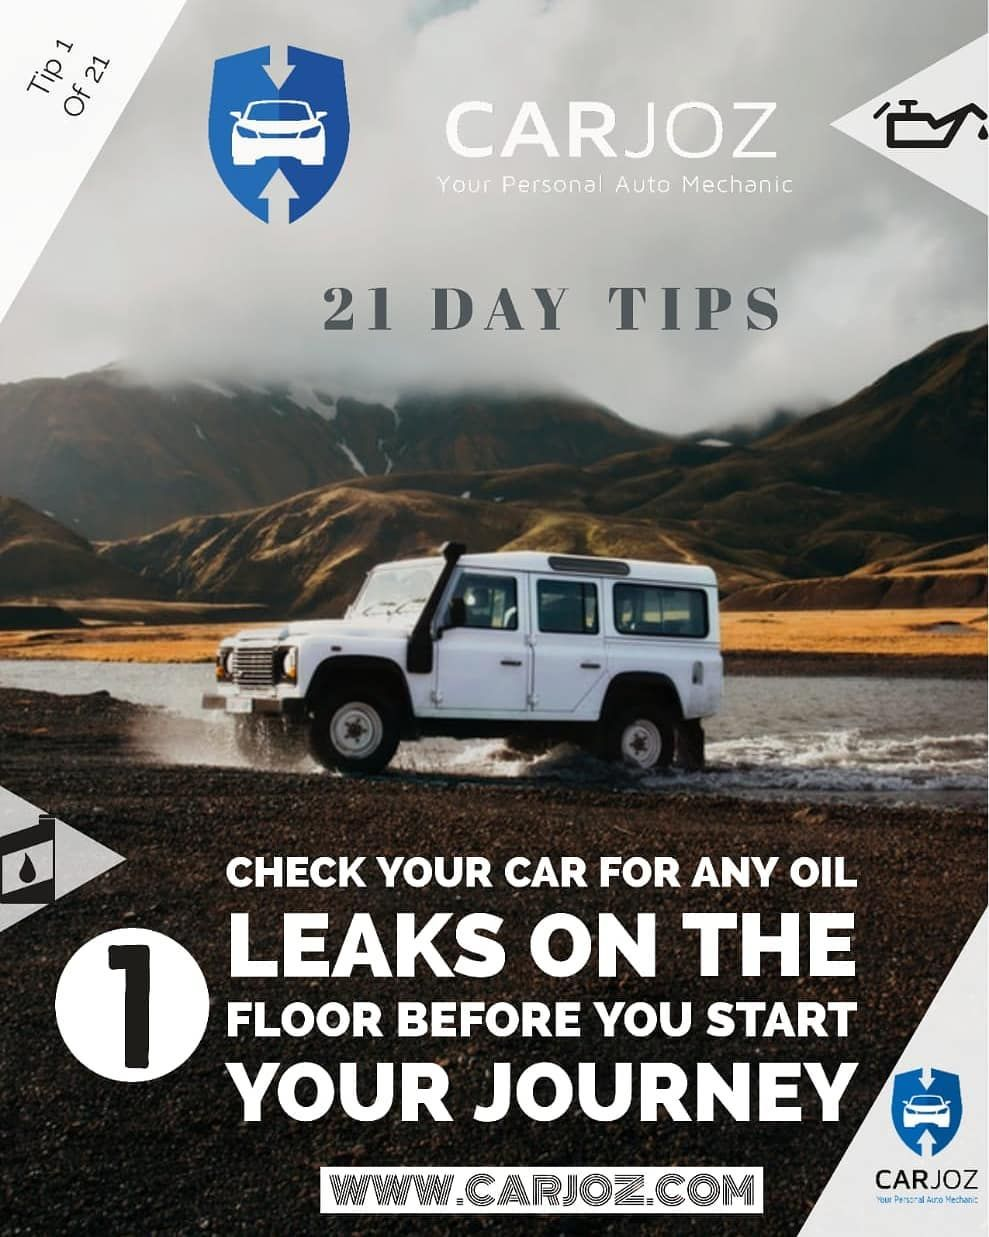 Be chill and relaxed about your car in these 21 days of